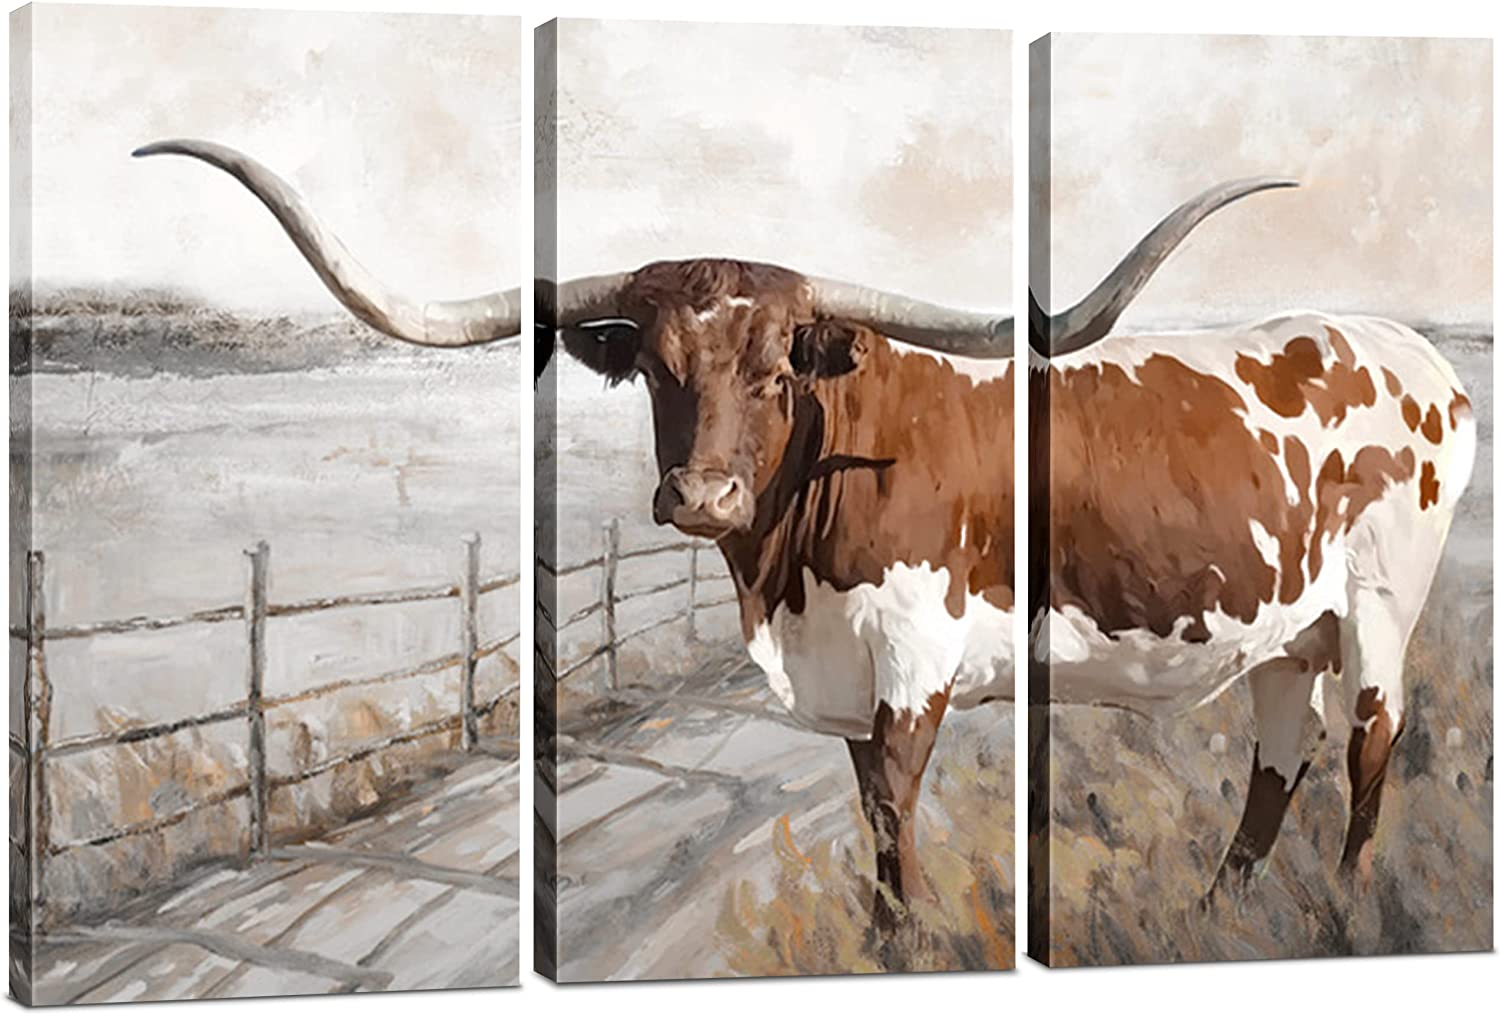 Longhorn Canvas Wall Art Decor - 3 Piece Set, Large Decorative Multi Panel Print - Highland Cow Art, Texas Western Theme for Living Room, Kitchen, Bedroom, Office & Home Decor Gift